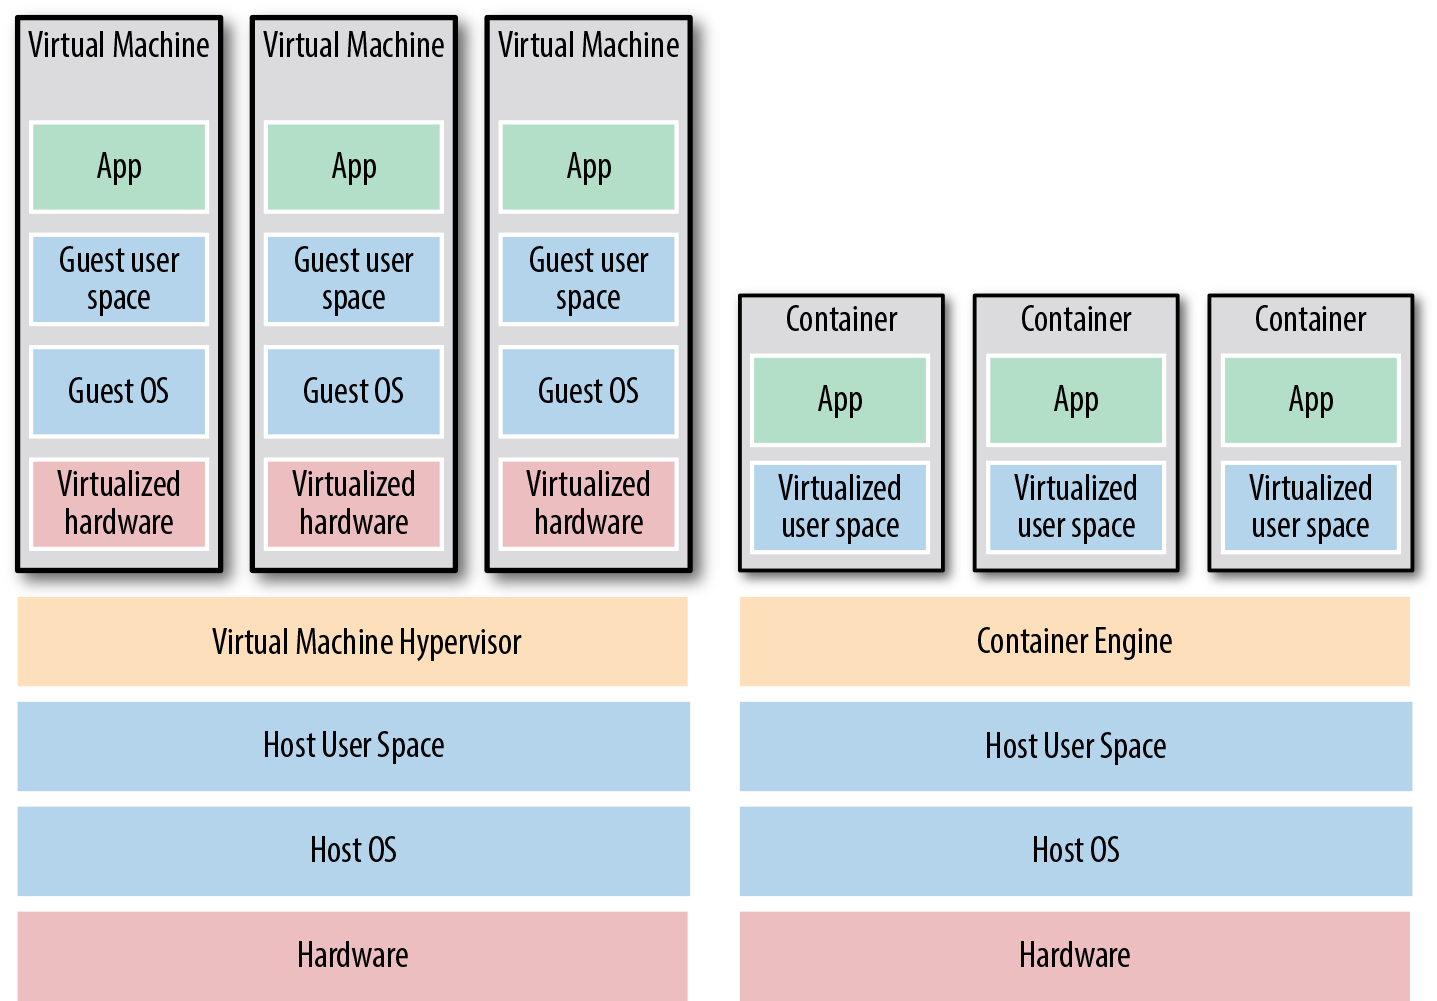 The two main types of images: VMs, on the left, and containers, on the right. VMs virtualize the hardware, whereas containers only virtualize user space.